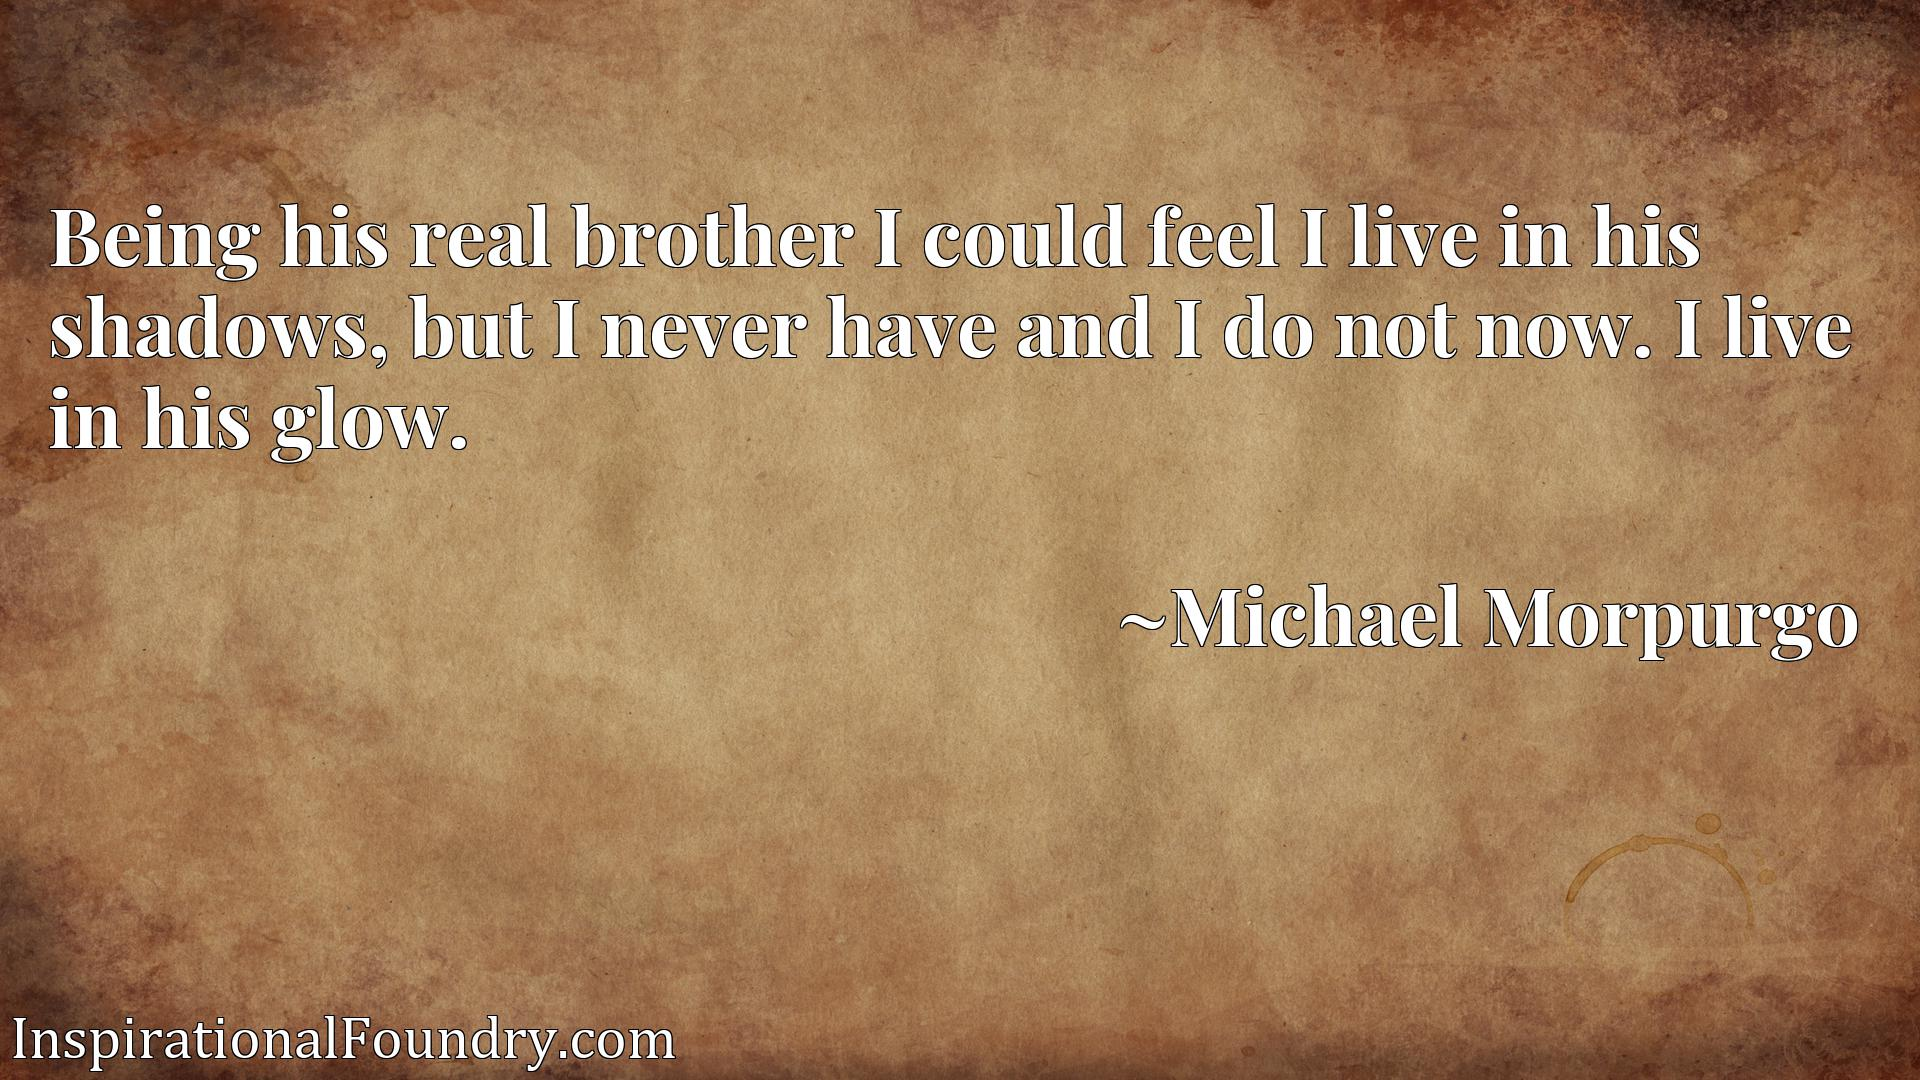 Being his real brother I could feel I live in his shadows, but I never have and I do not now. I live in his glow.